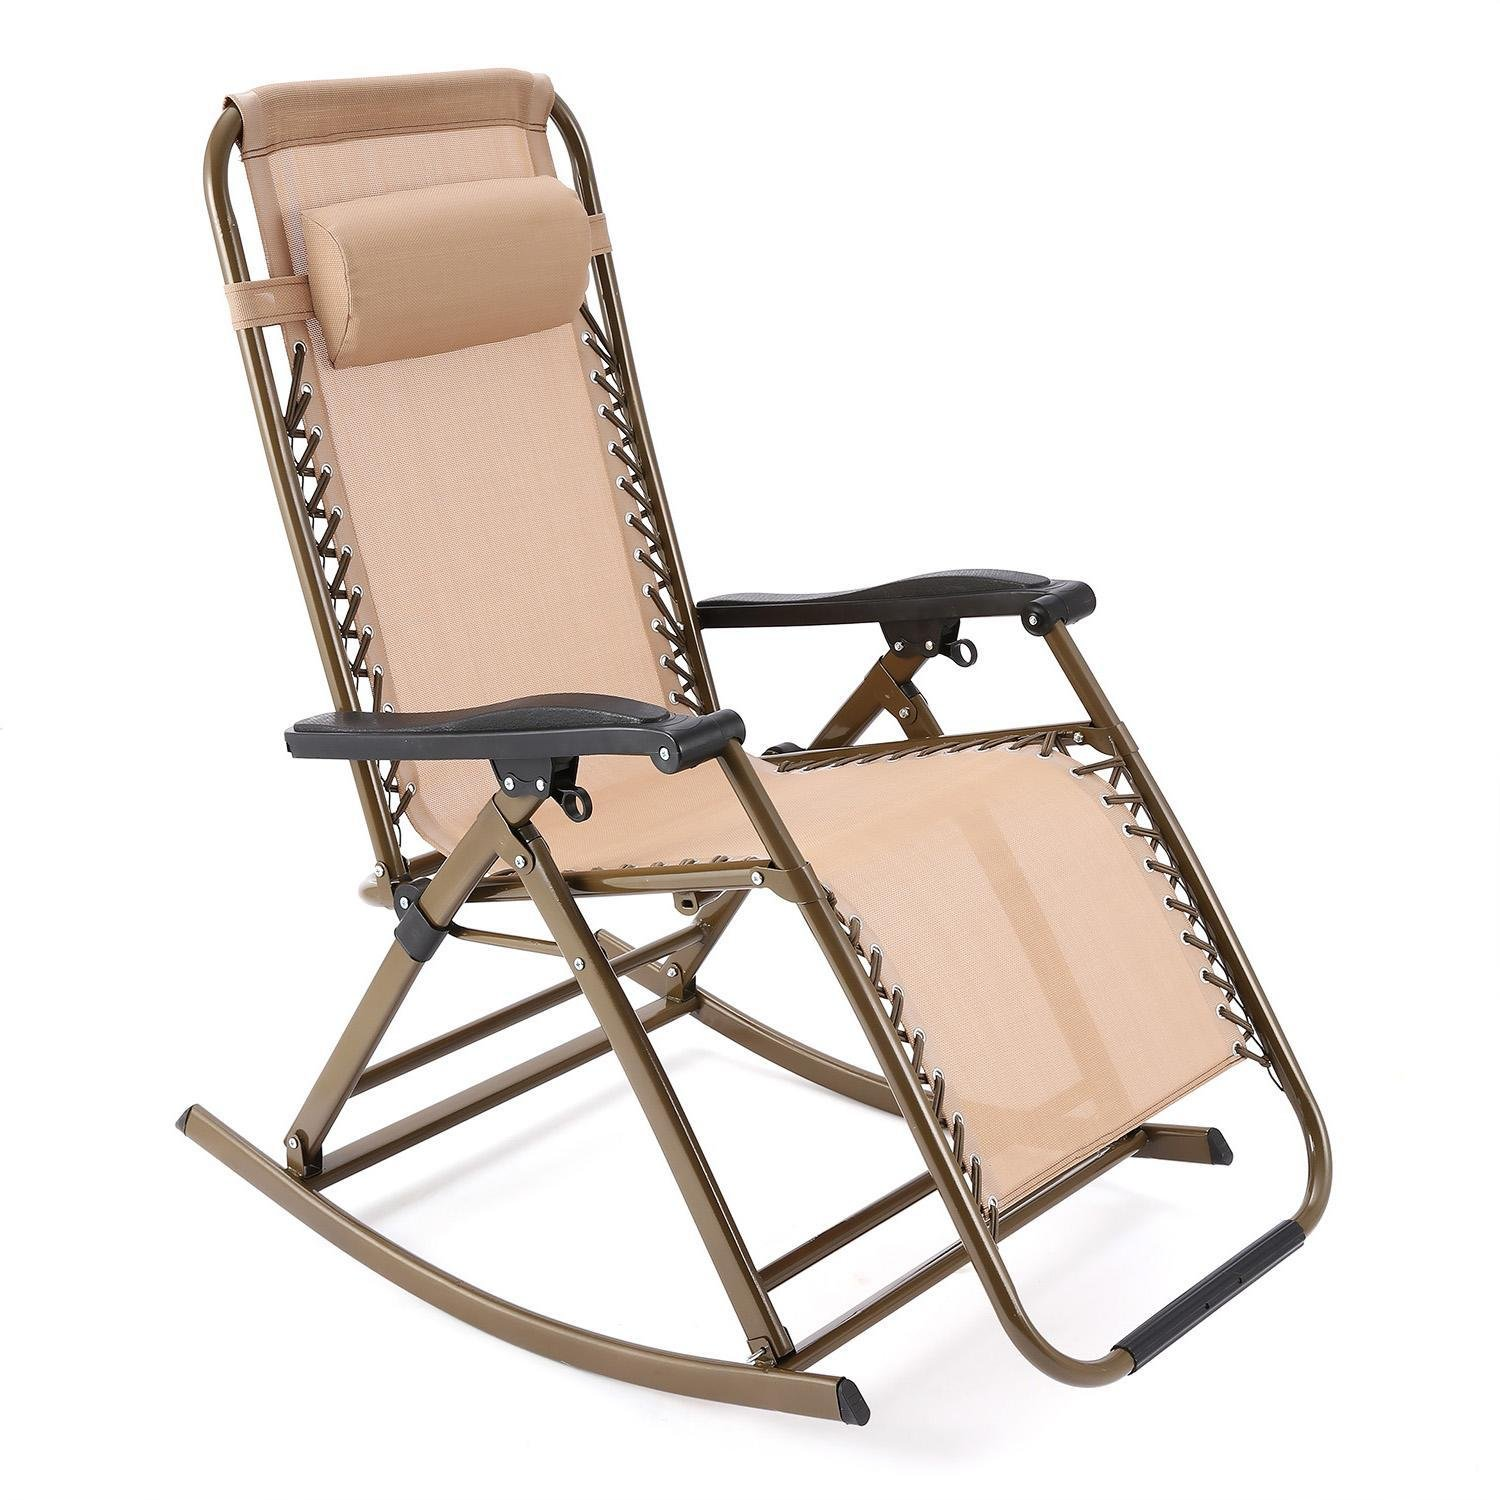 Amazon afferty Folding fortable Relax Rocking Chair